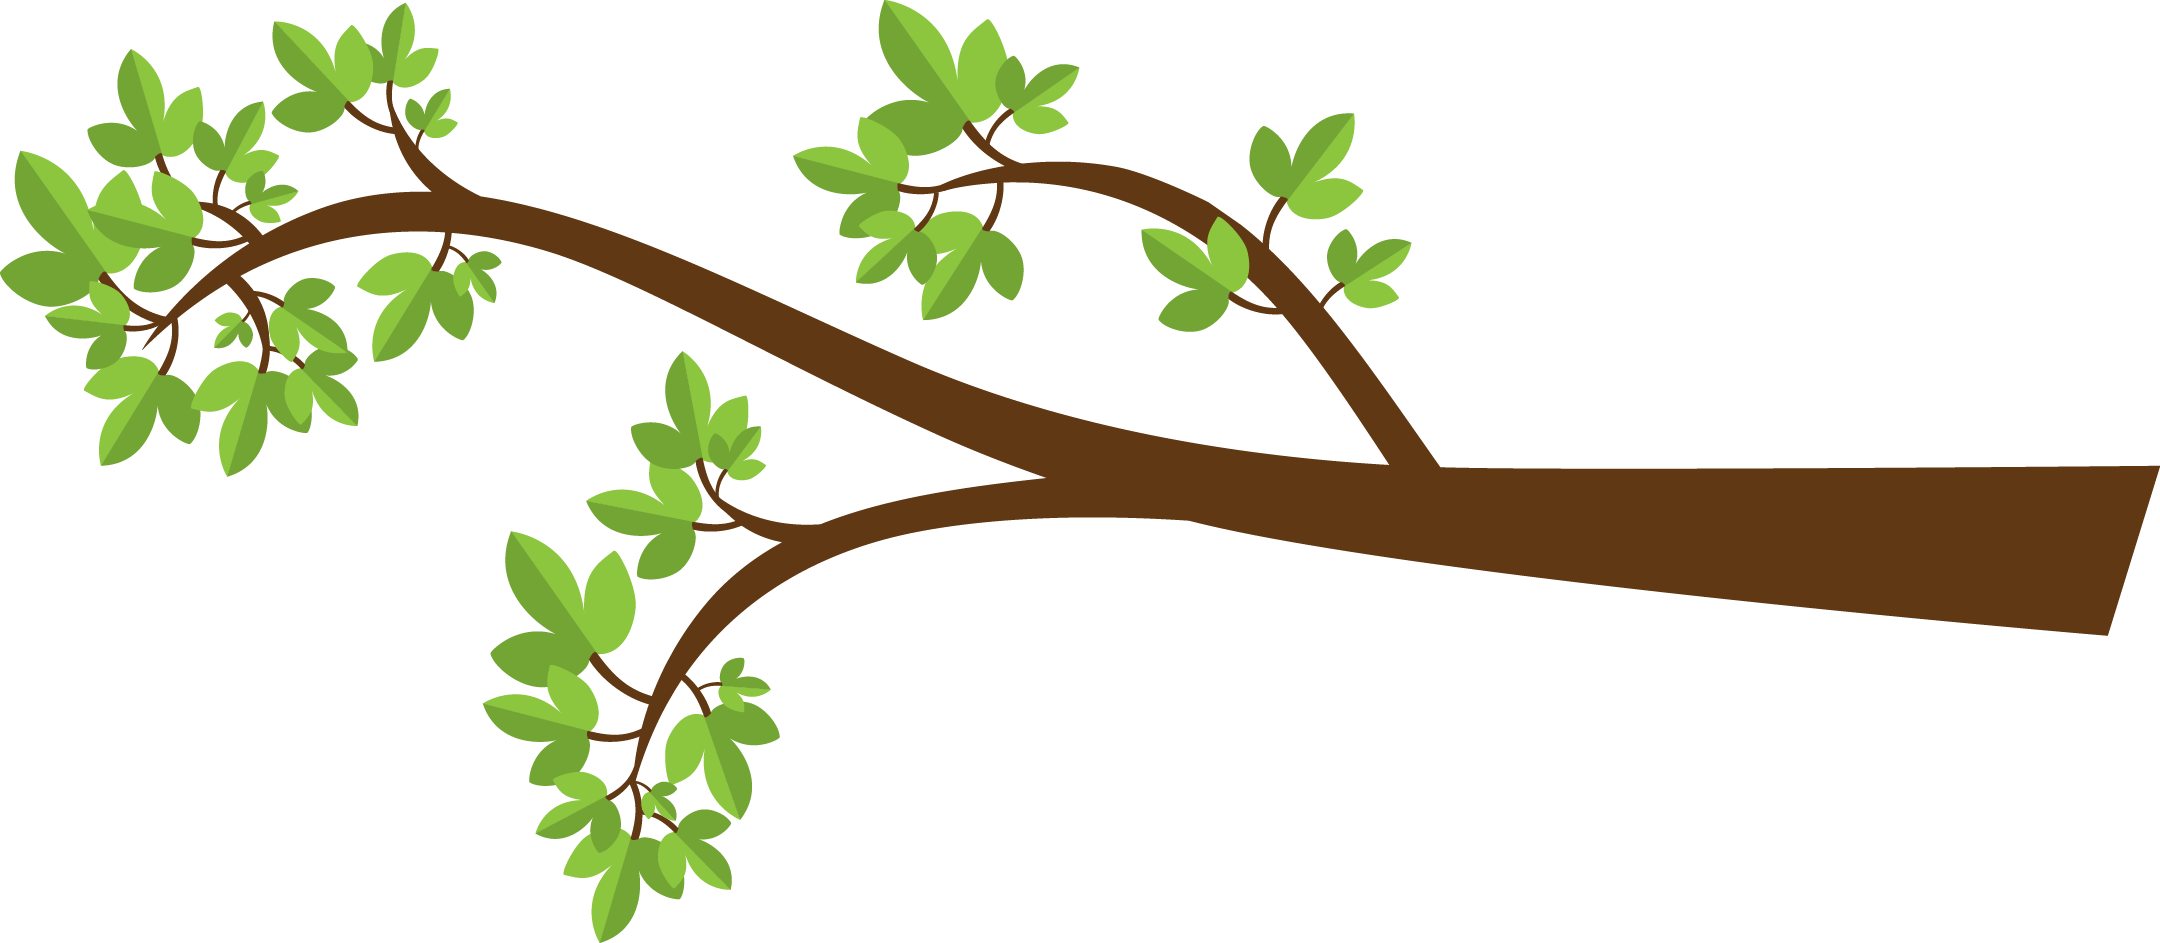 Season clipart branch. Image of tree best